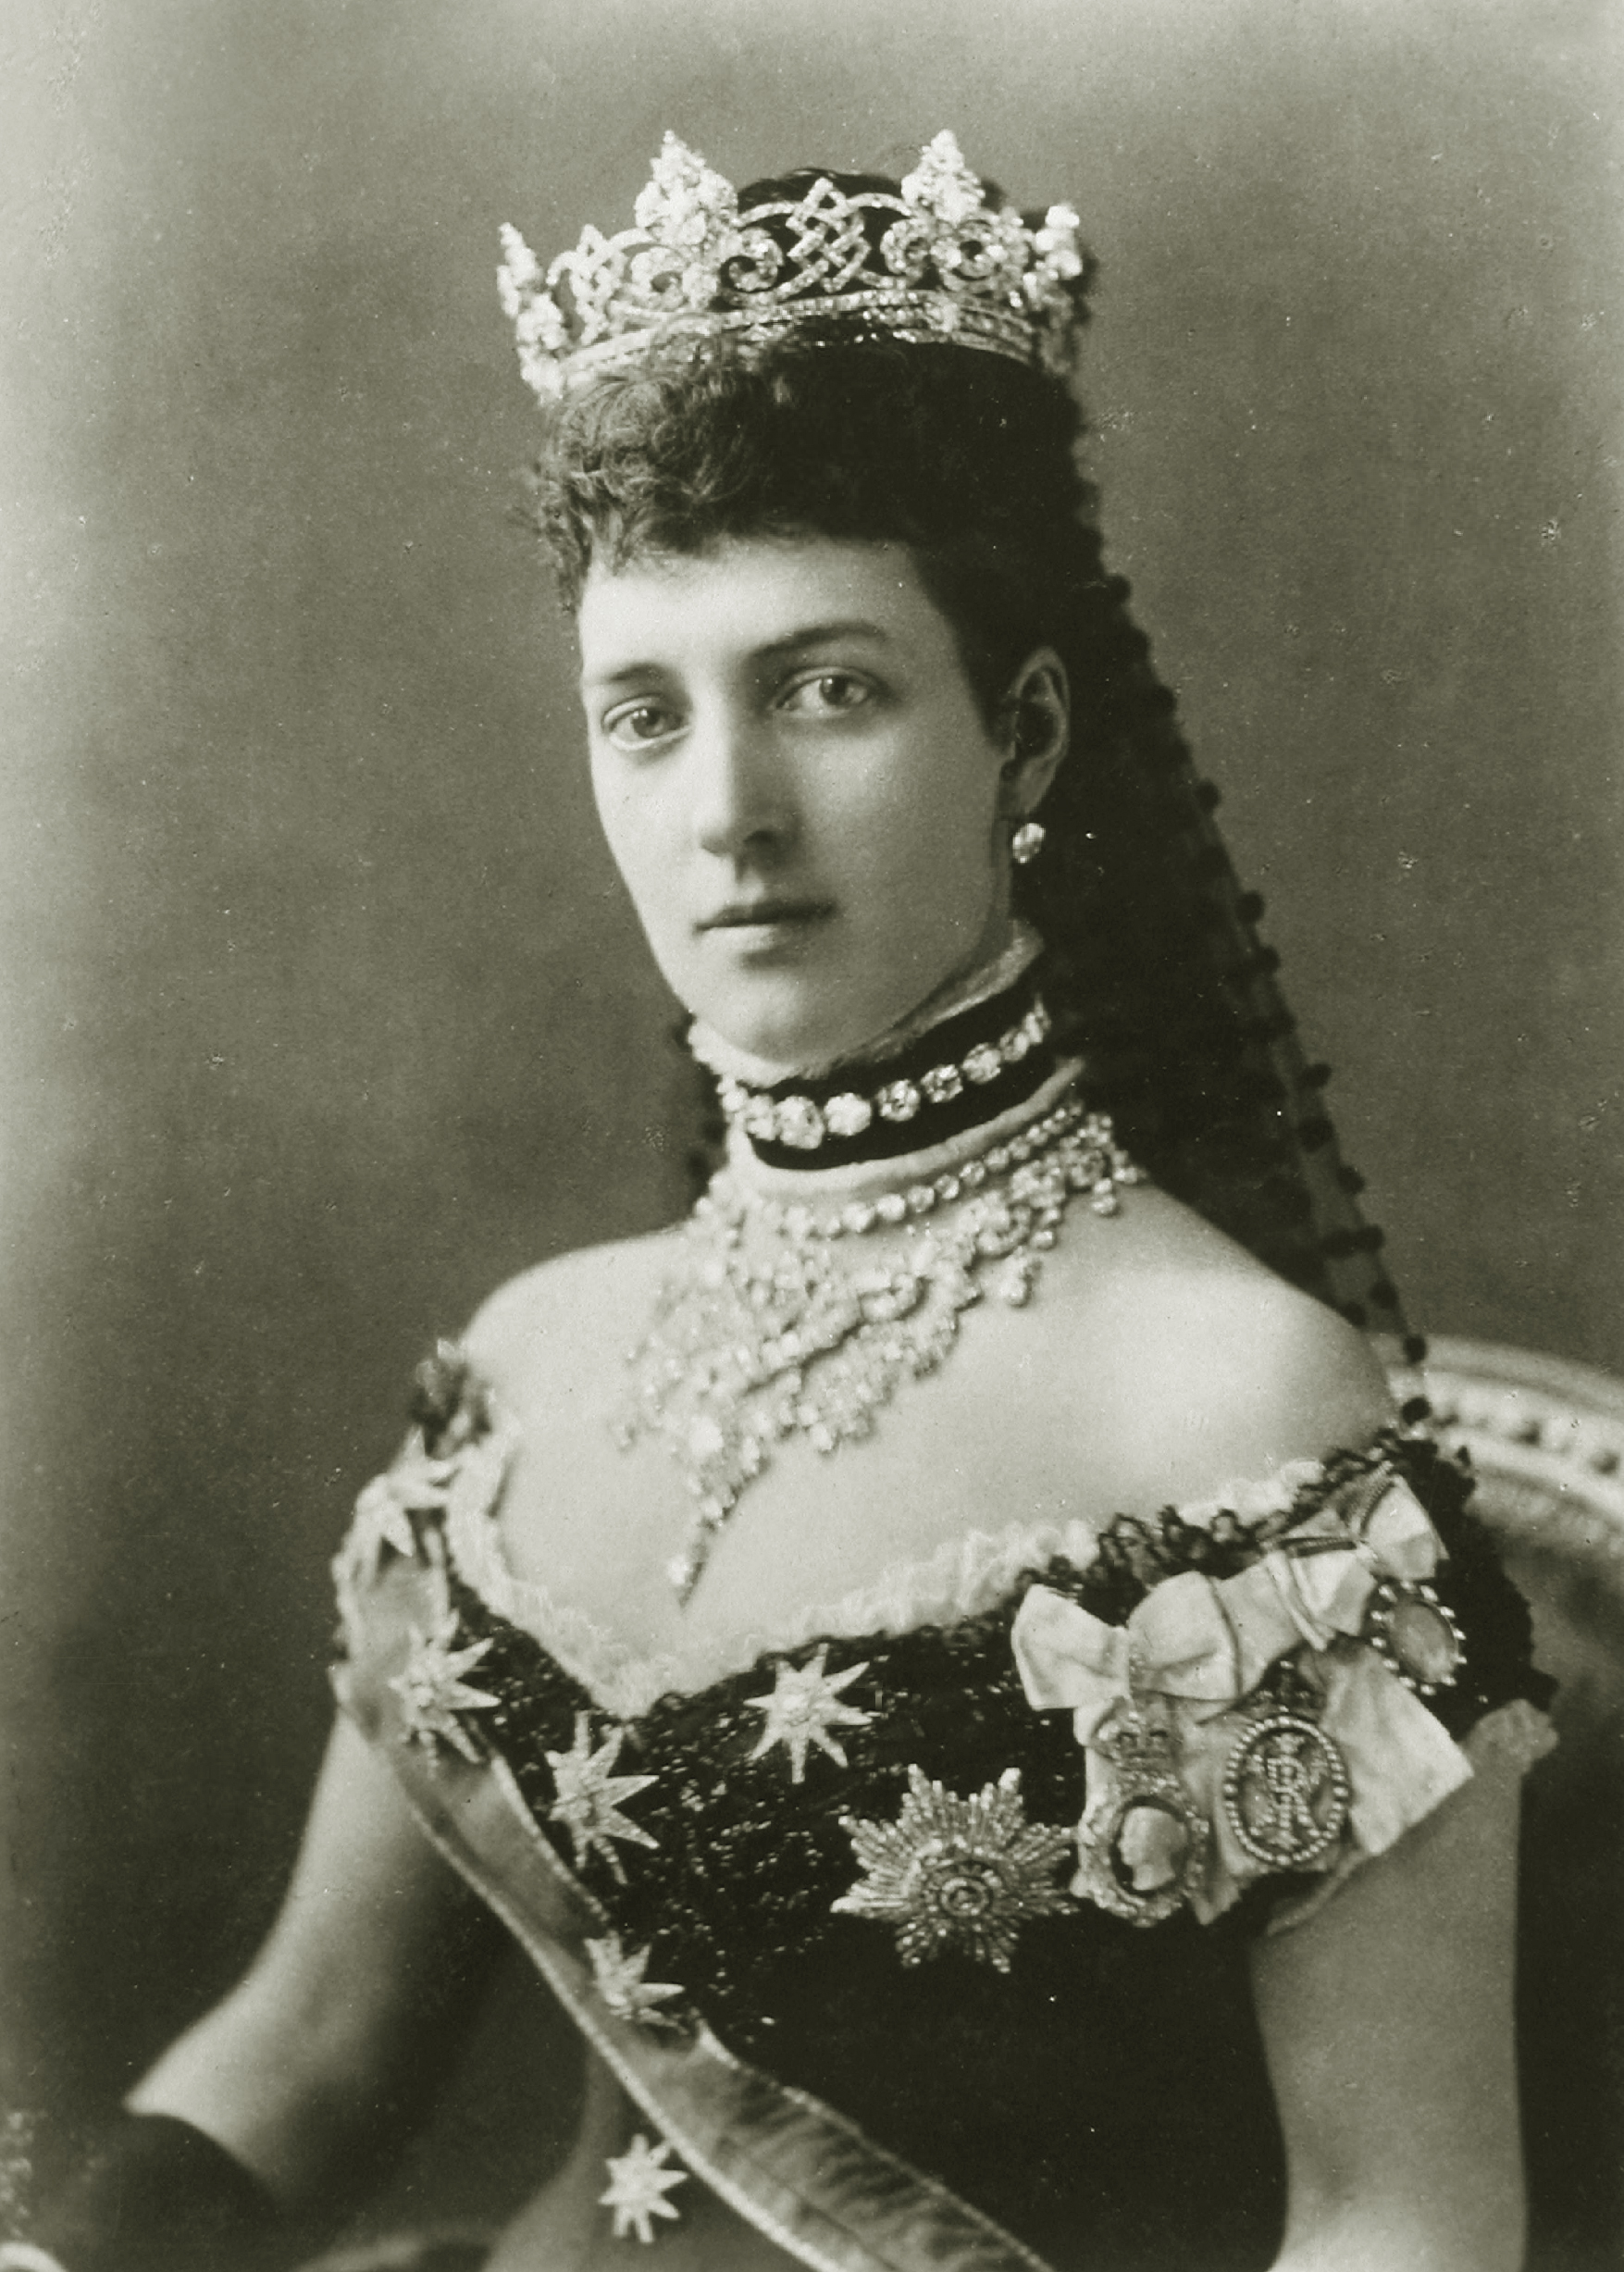 Image of Queen Alexandra from Wikidata